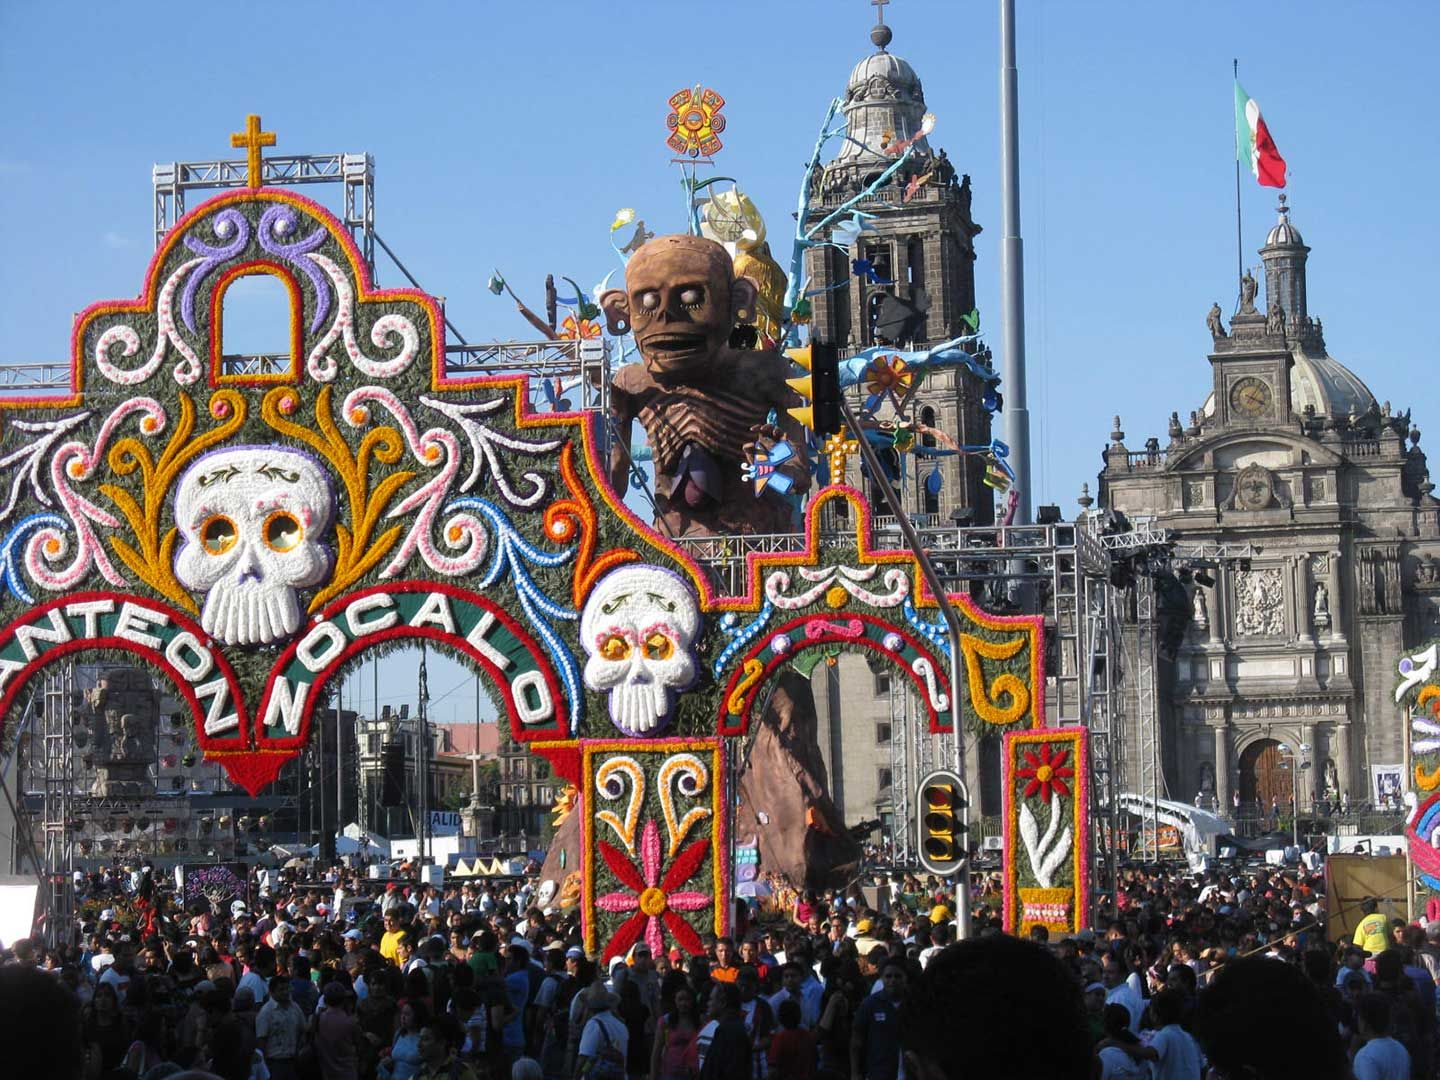 The Day of the Dead Festival in Mexico City, Mexico ...